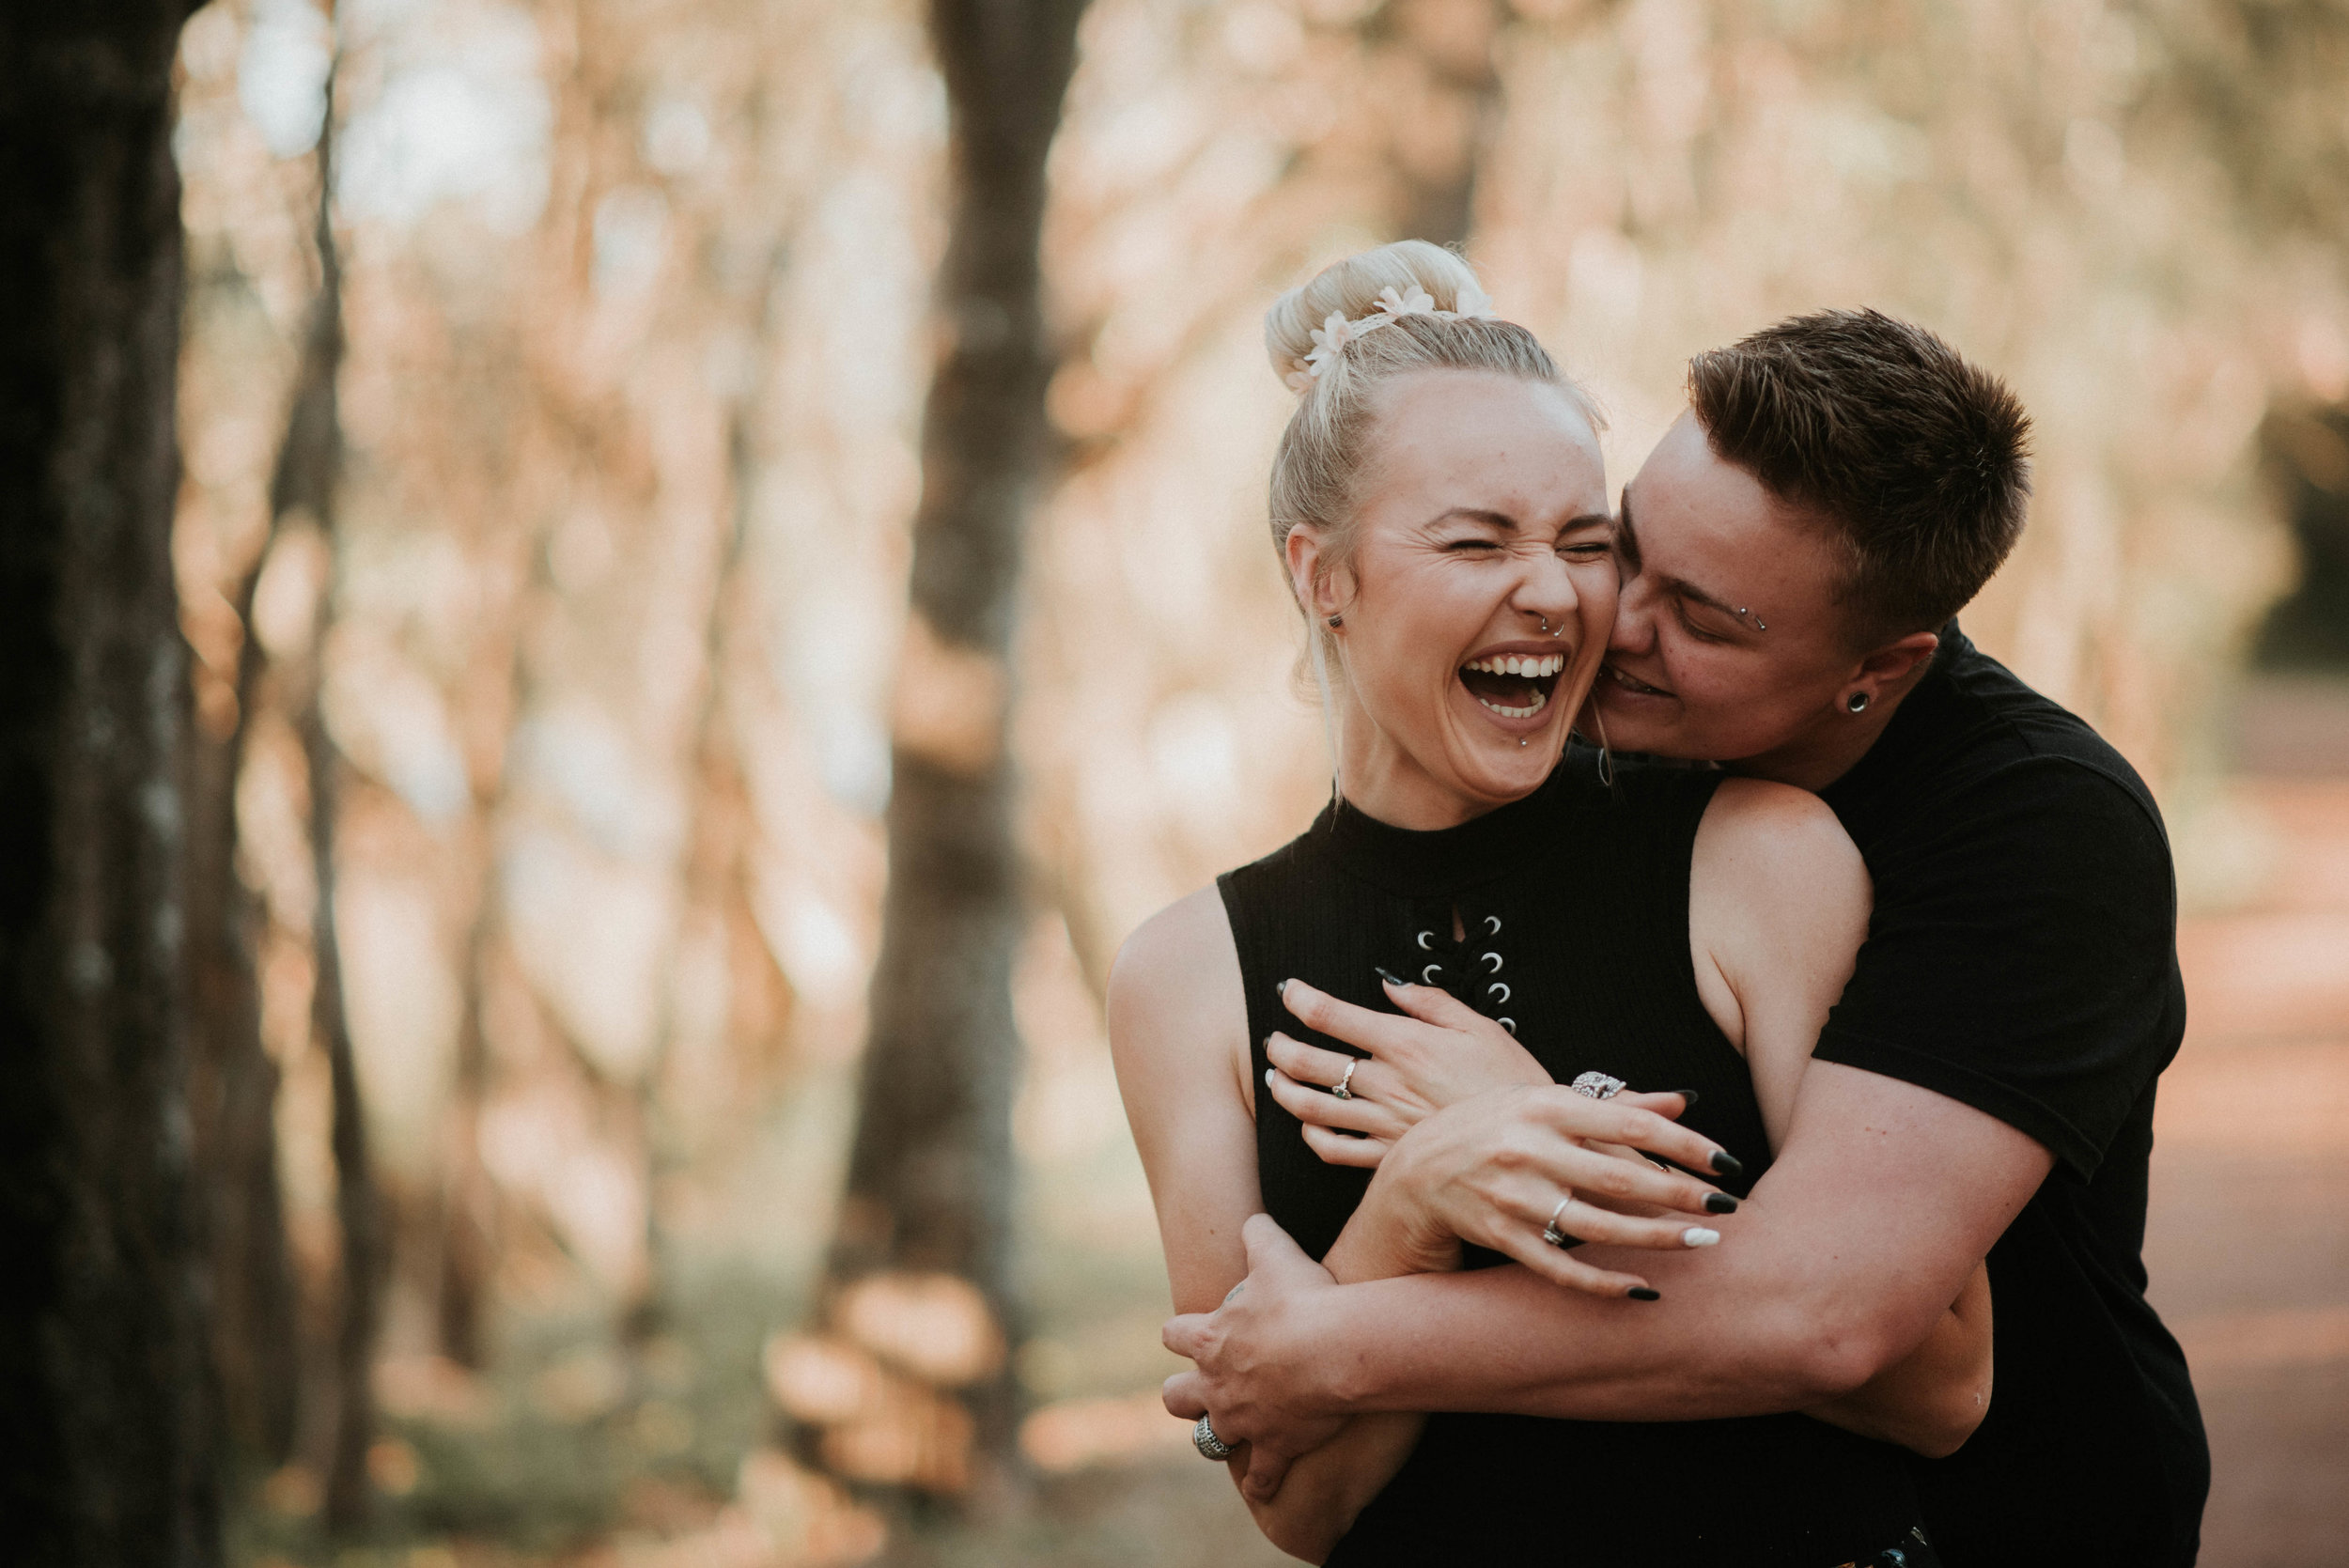 Jess & Harper - Wollongong Family Session      14th November 2017